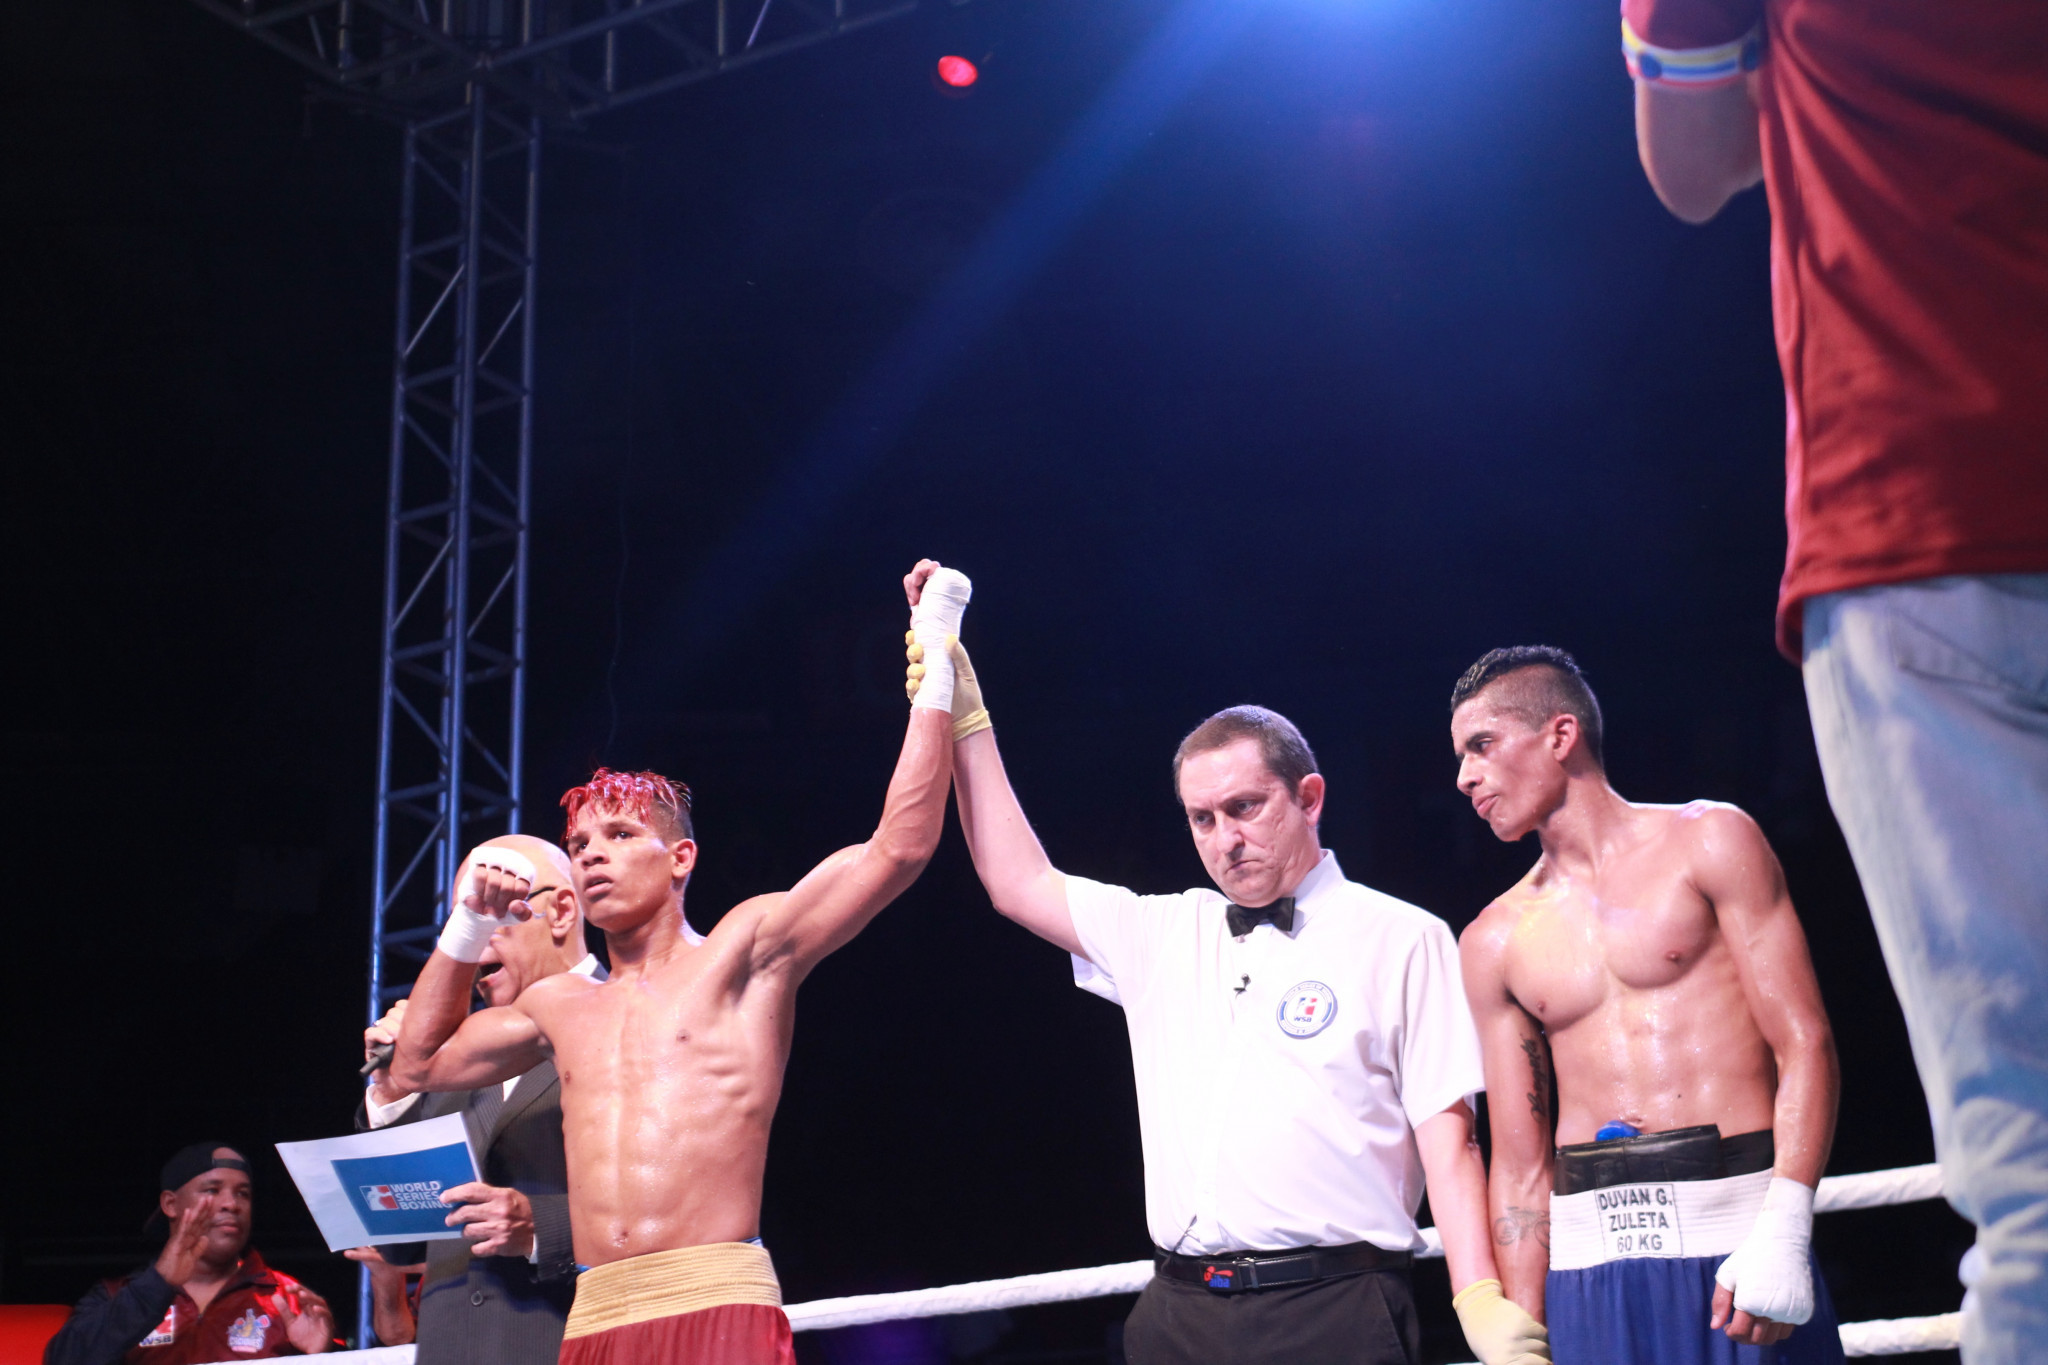 Colombia Heroicos seeking first win of World Series of Boxing season